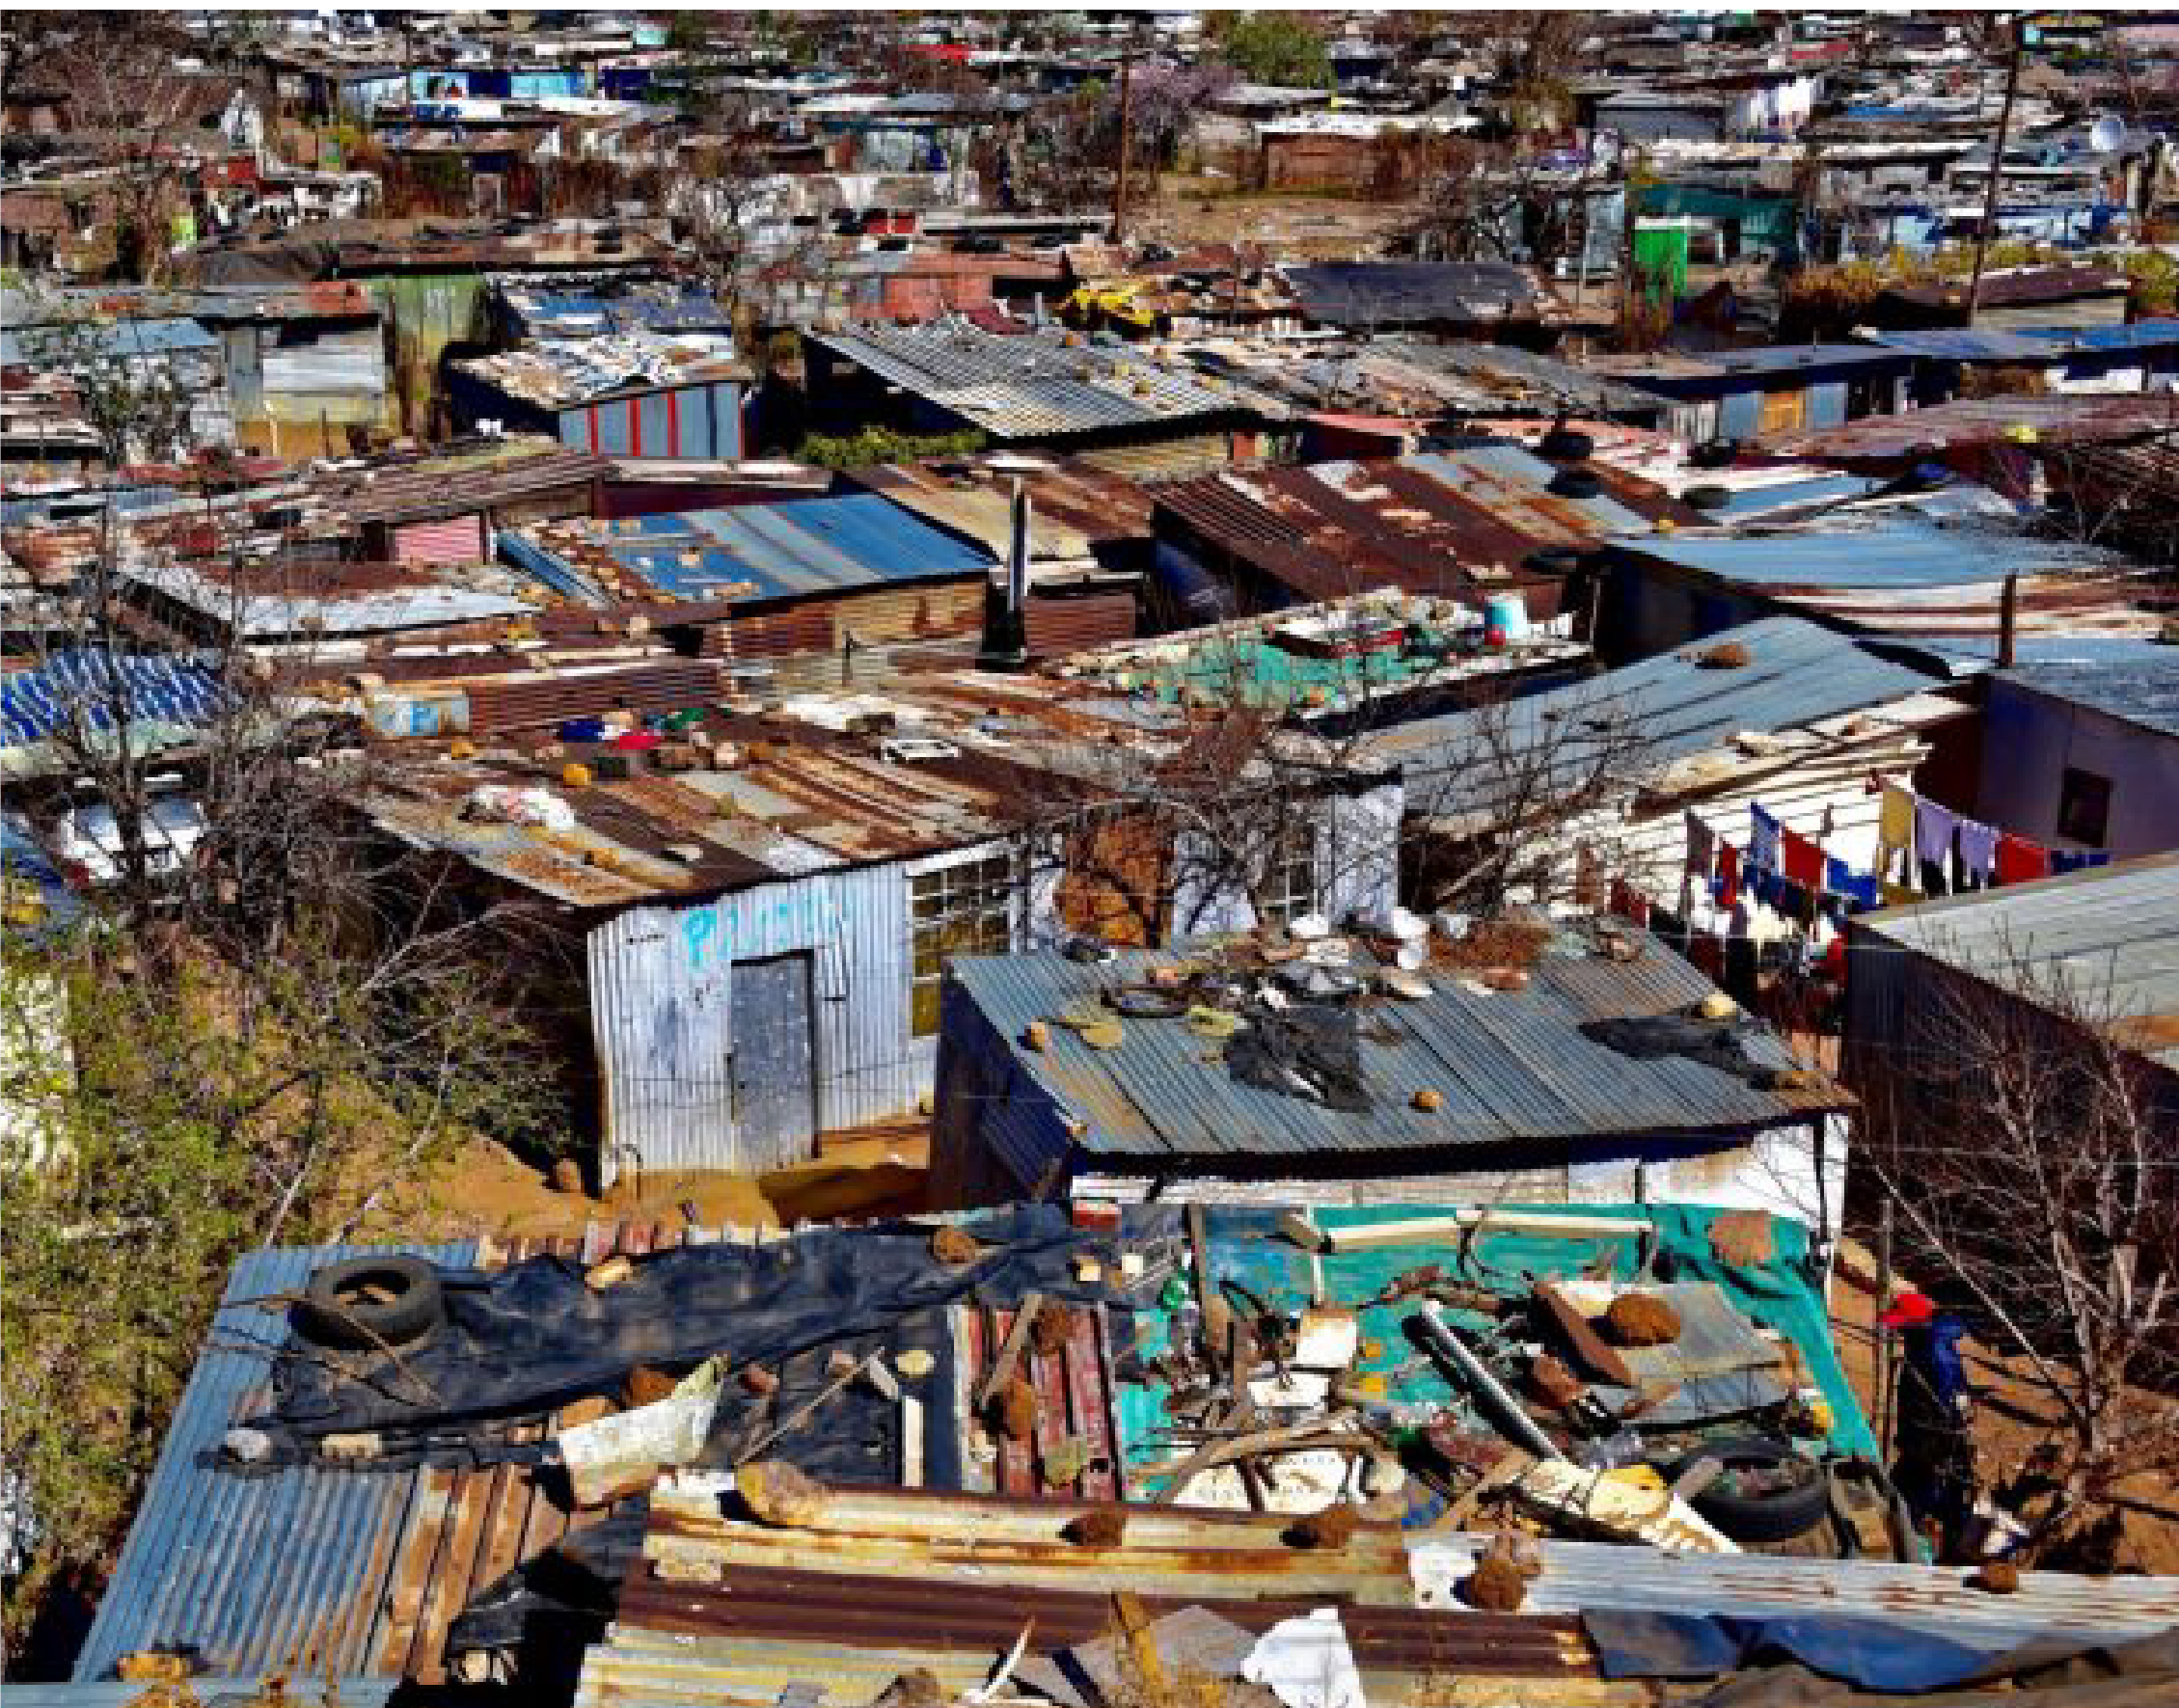 Only two provinces have above-average living conditions